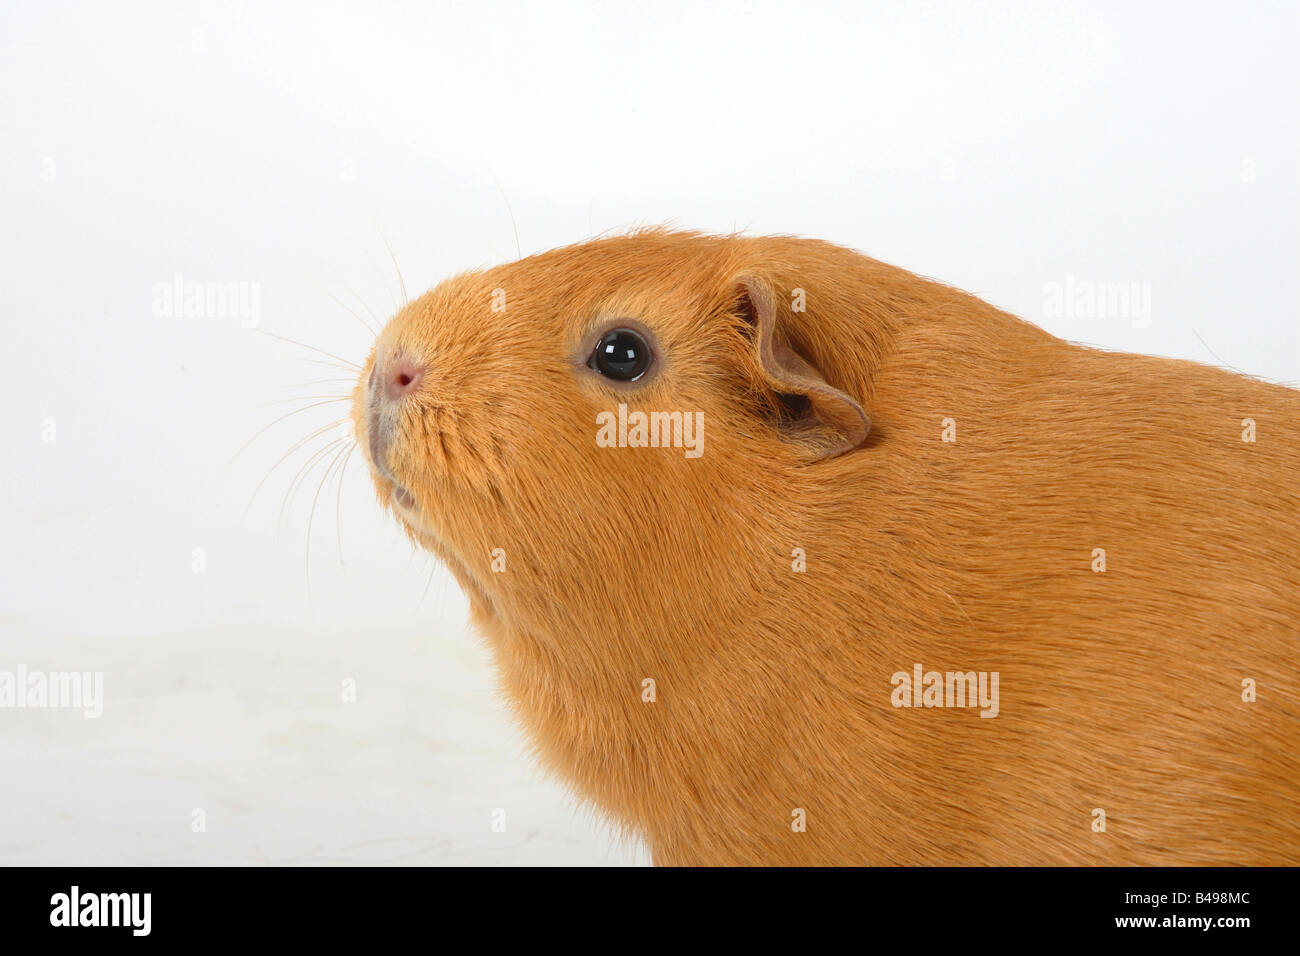 Englisch Guinea Pig side profile - Stock Image